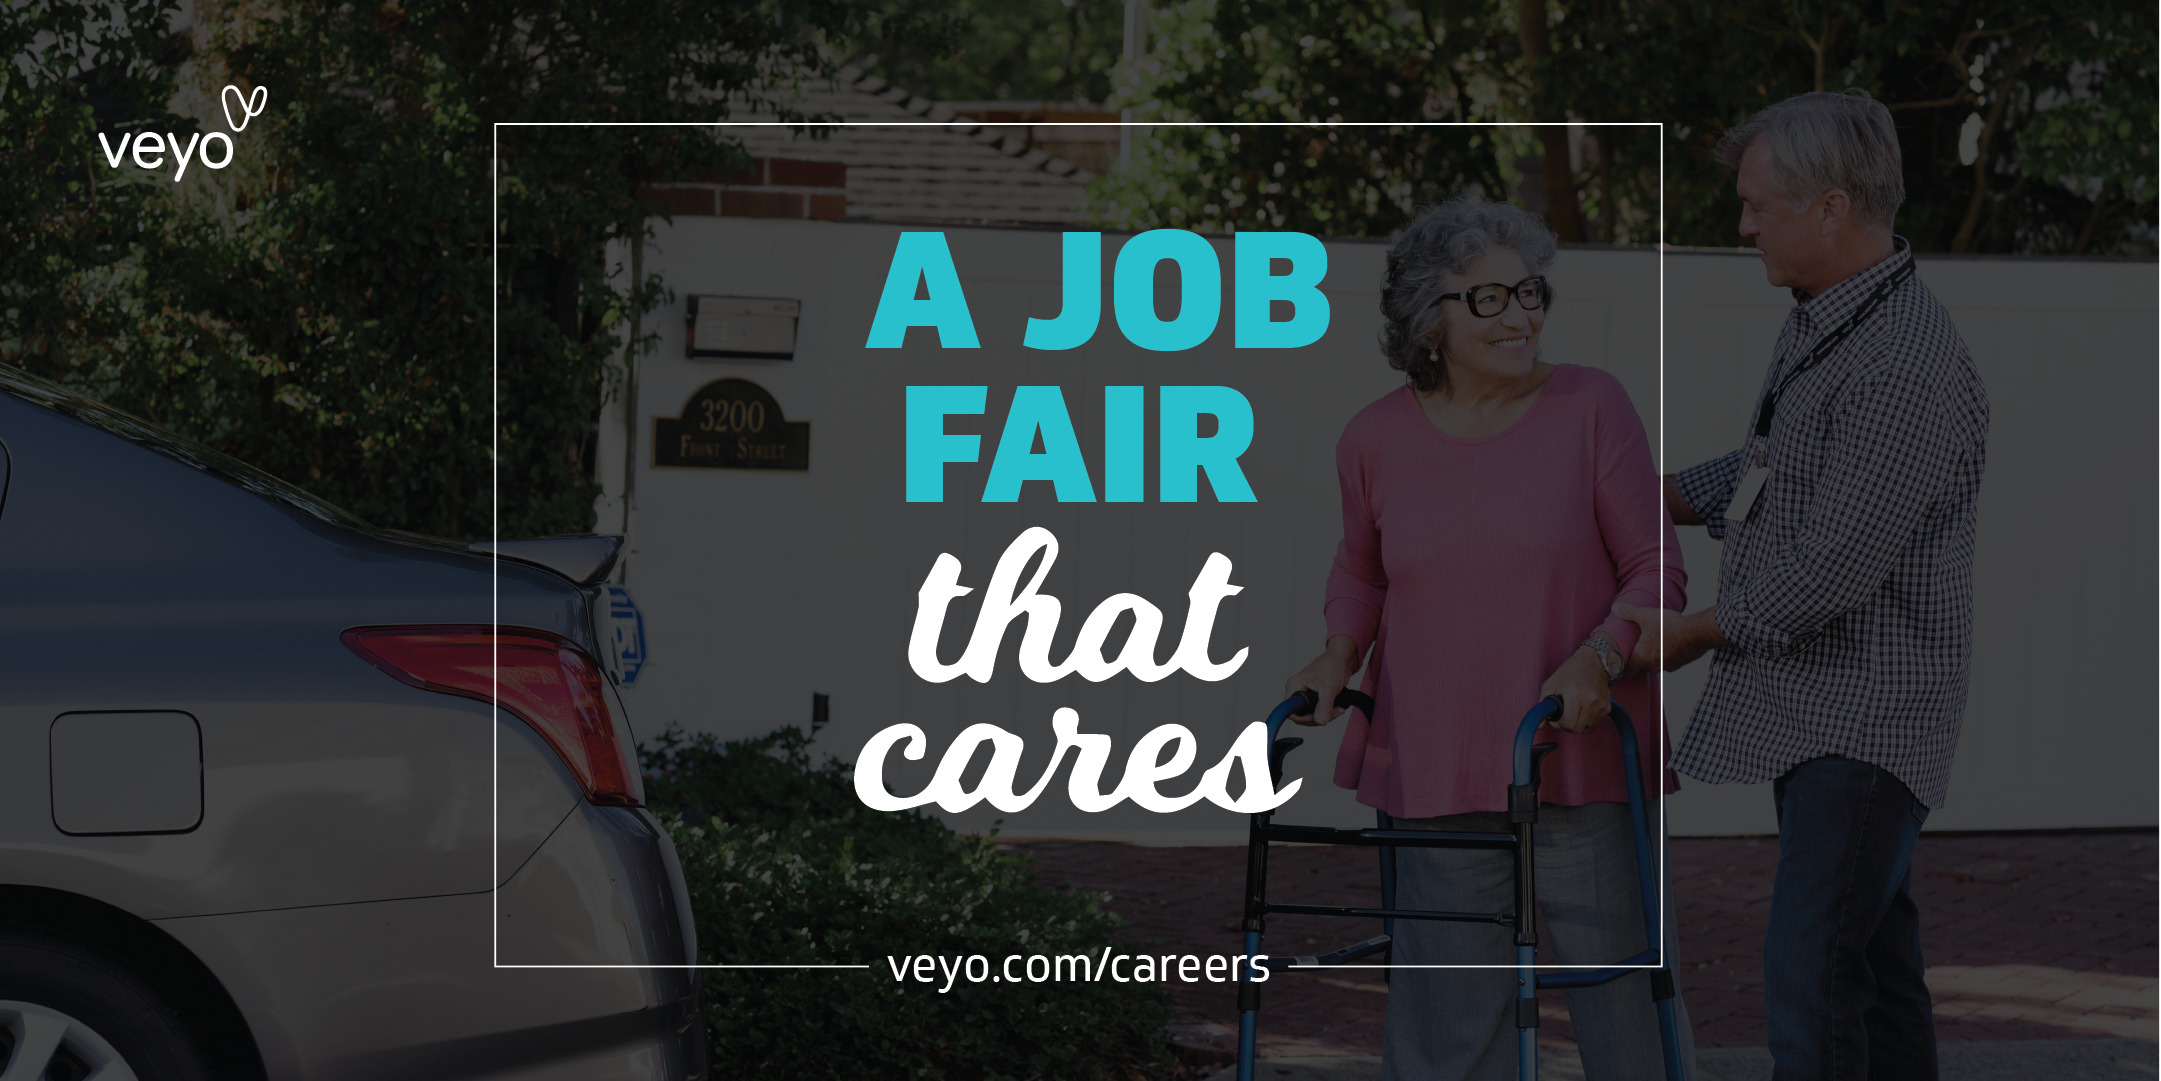 Veyo - A Job Fair that Cares